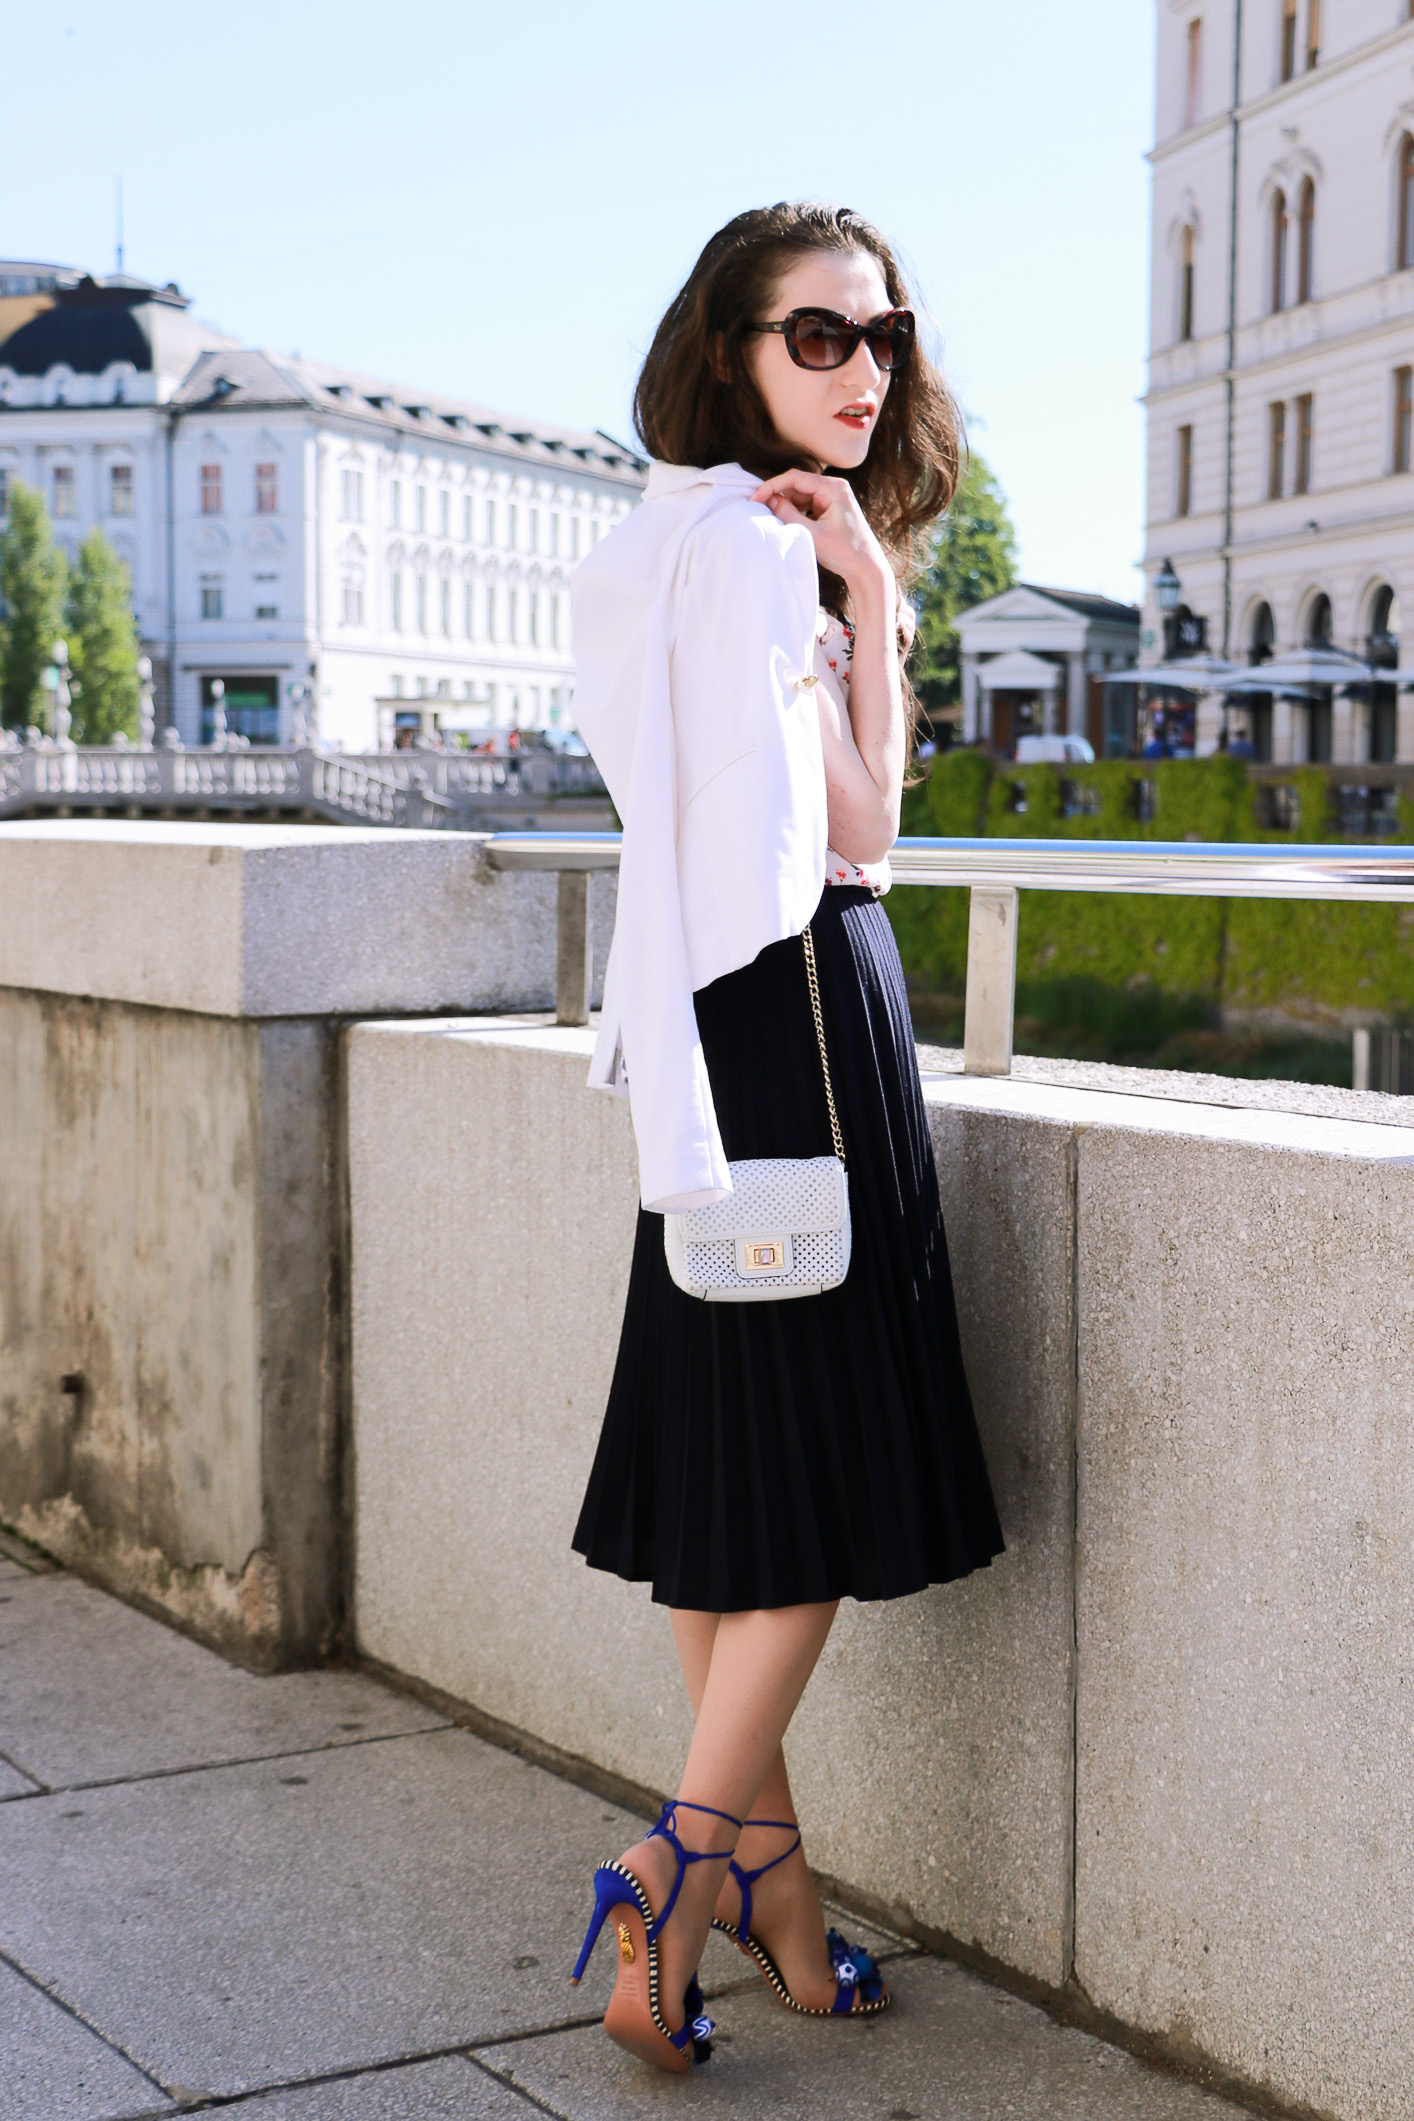 Fashion blogger Veronika Lipar of Brunette From Wall Street on borrowing the vintage midi plissé skirt from her mother